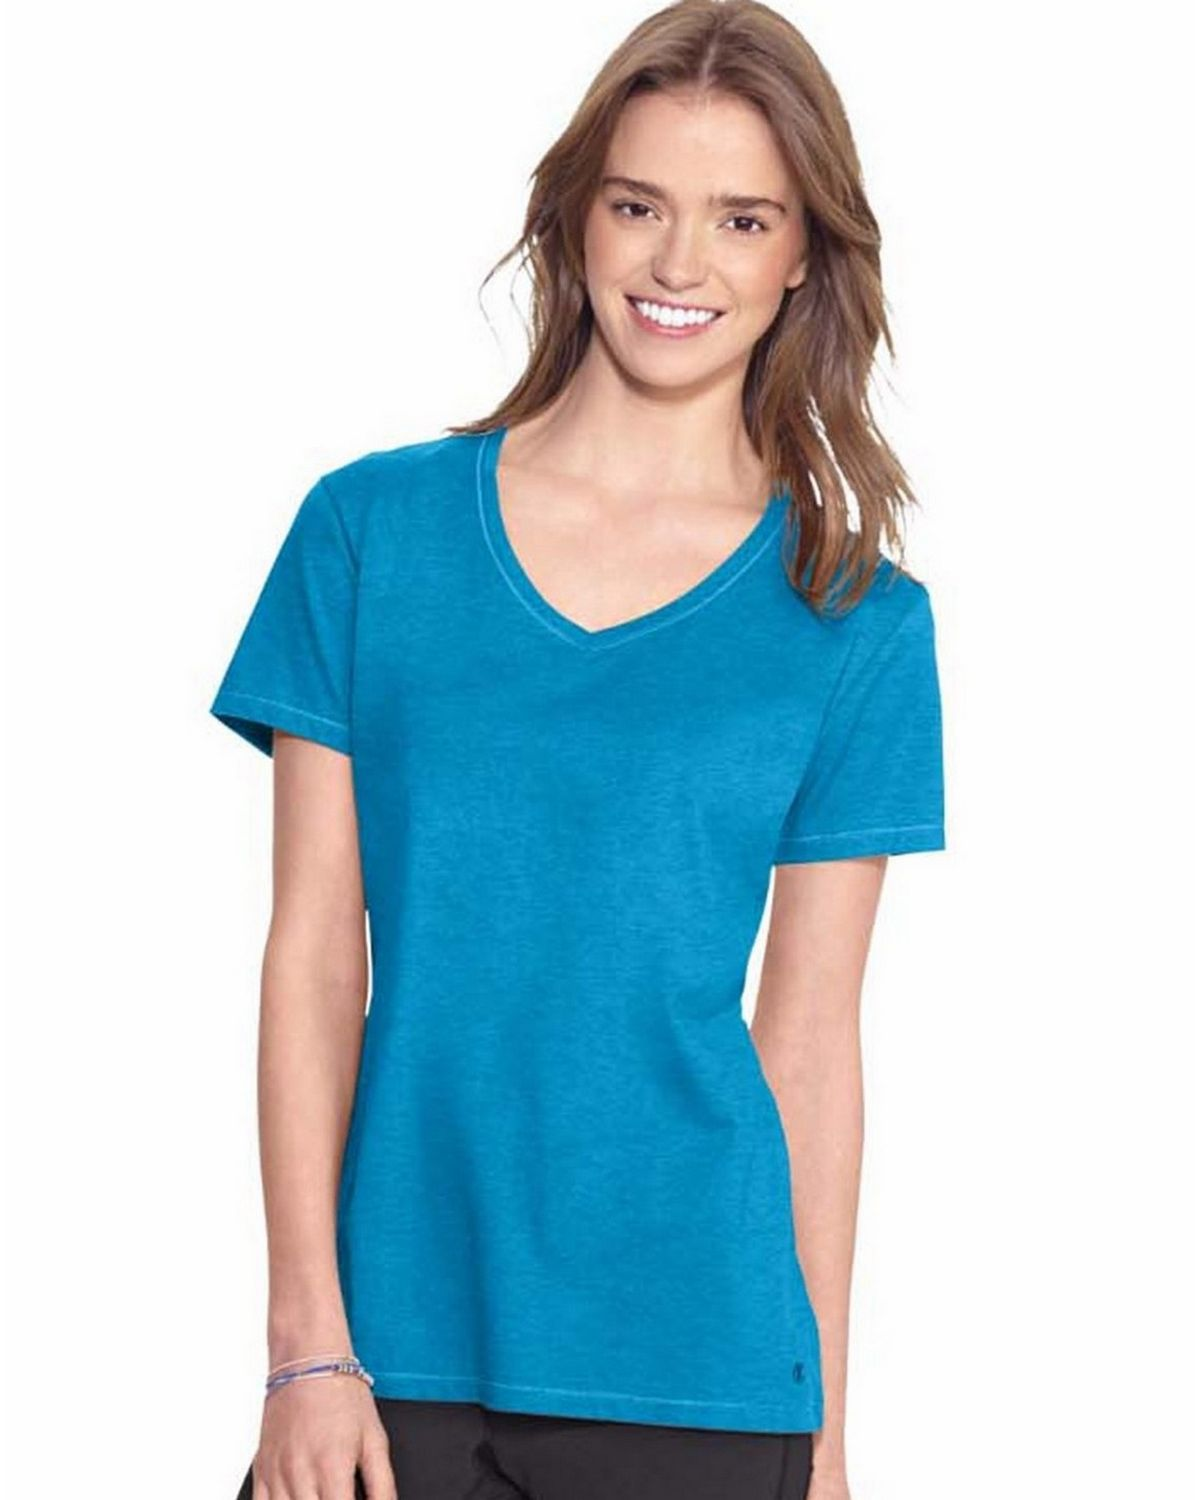 Champion 8875 Authentic Womens Jersey Tee - Underwater Blue Heather - XL 8875